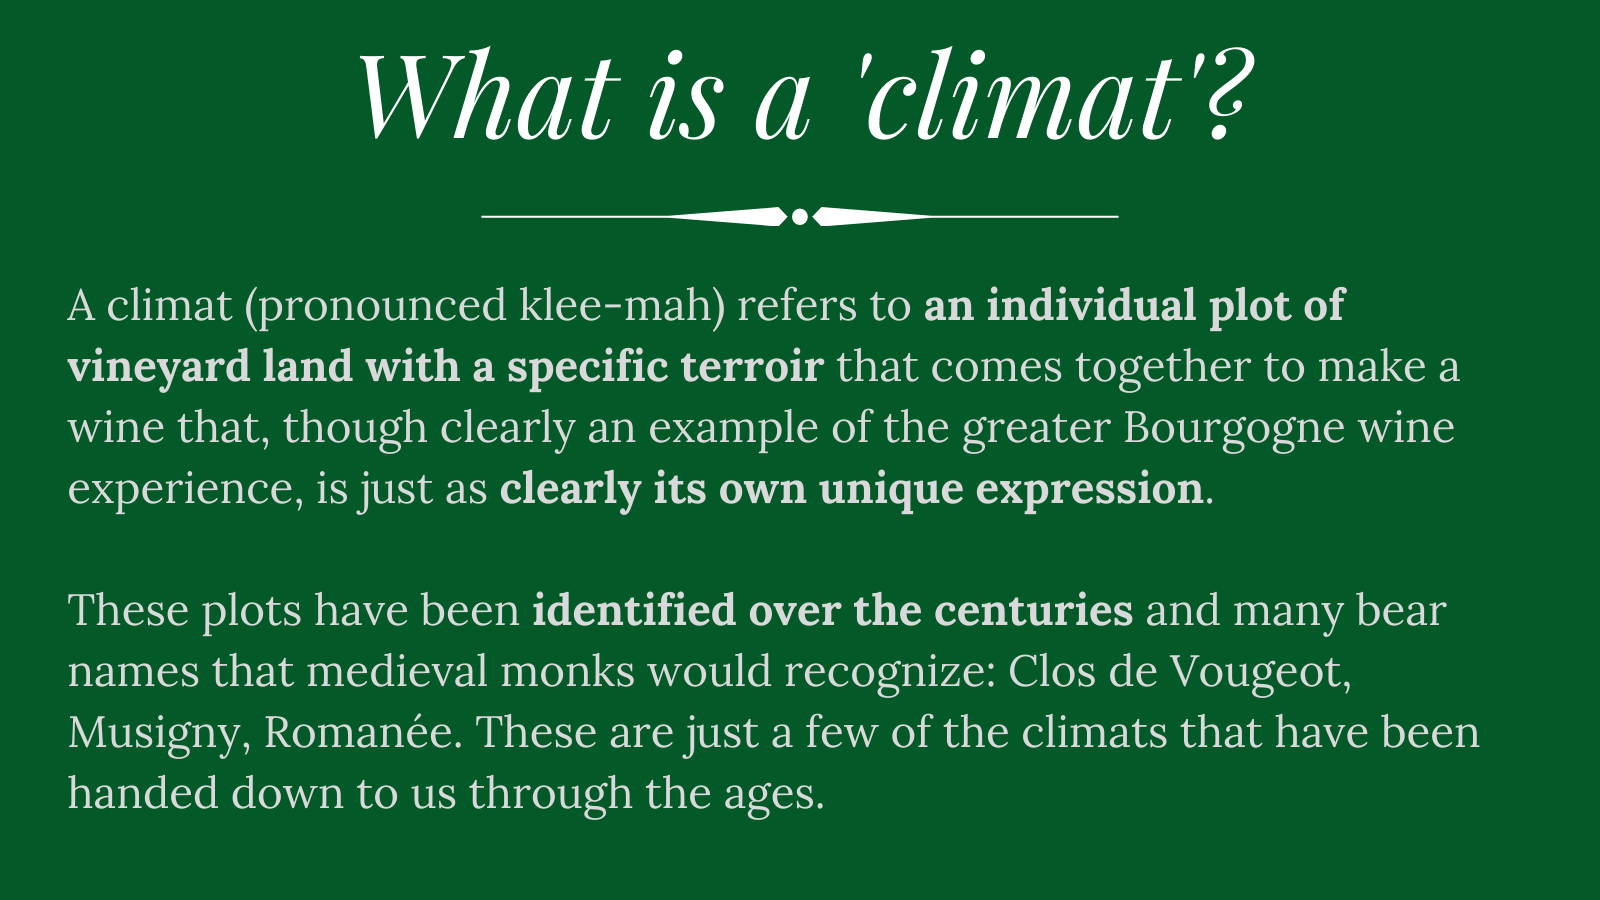 What is a climat?